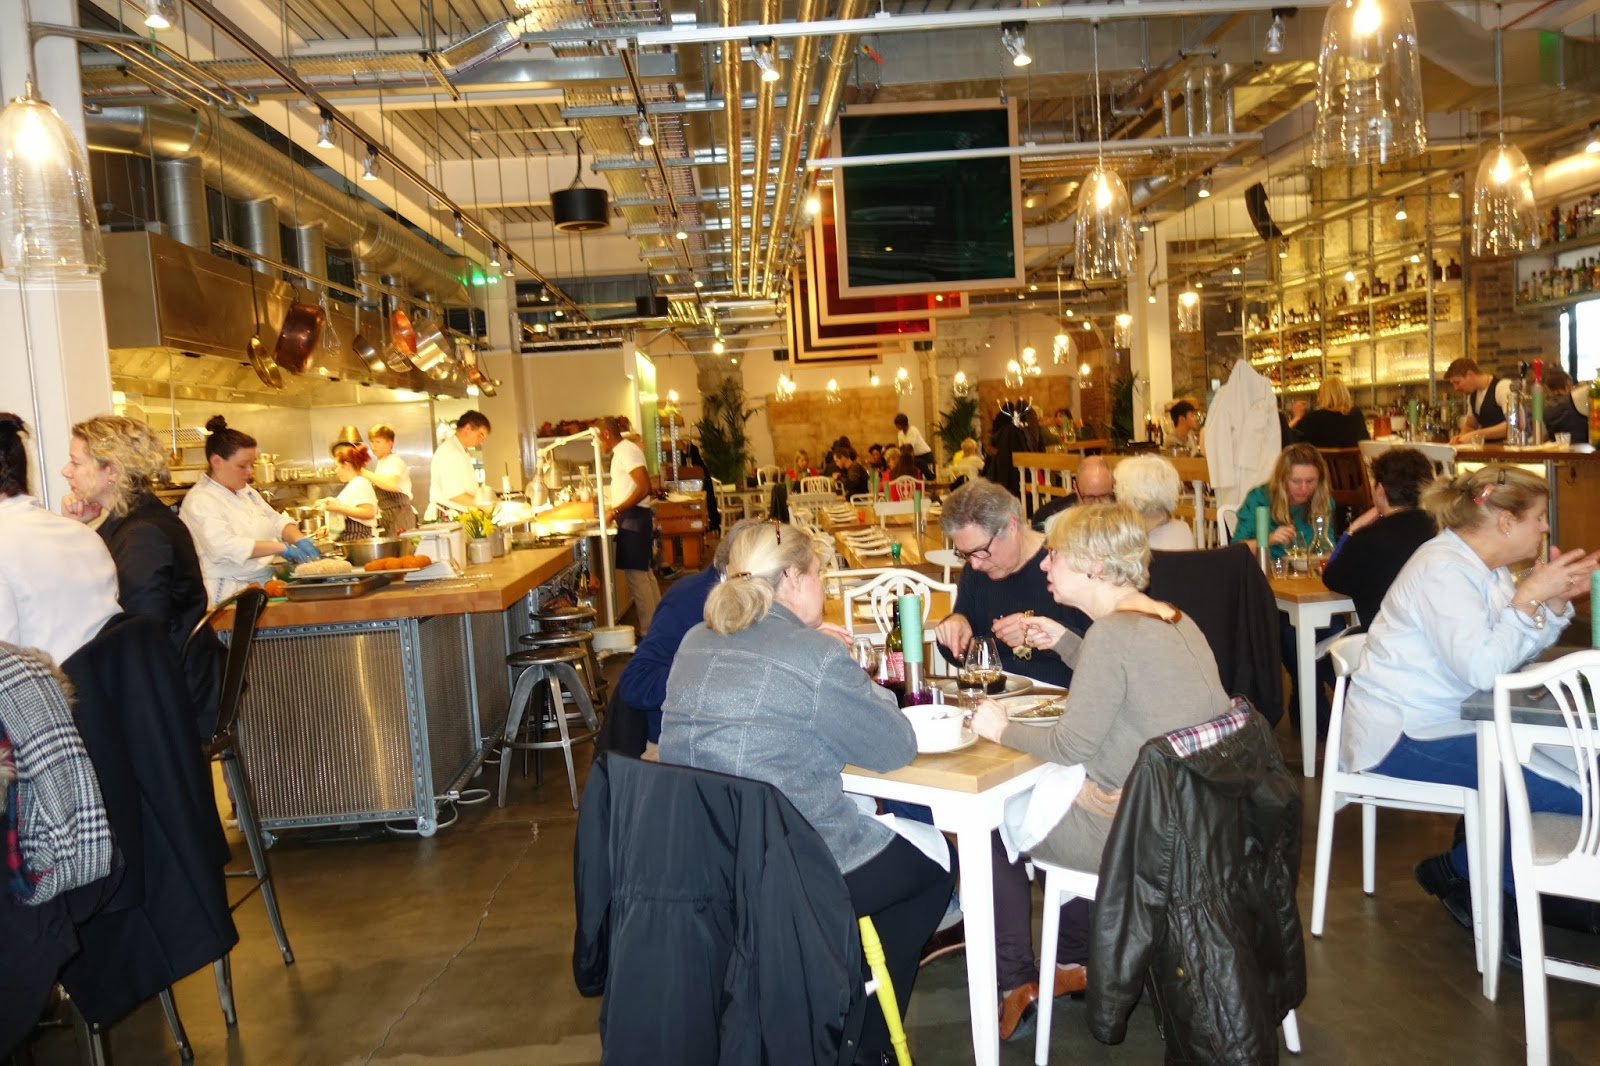 The interior of Grain store restaurant